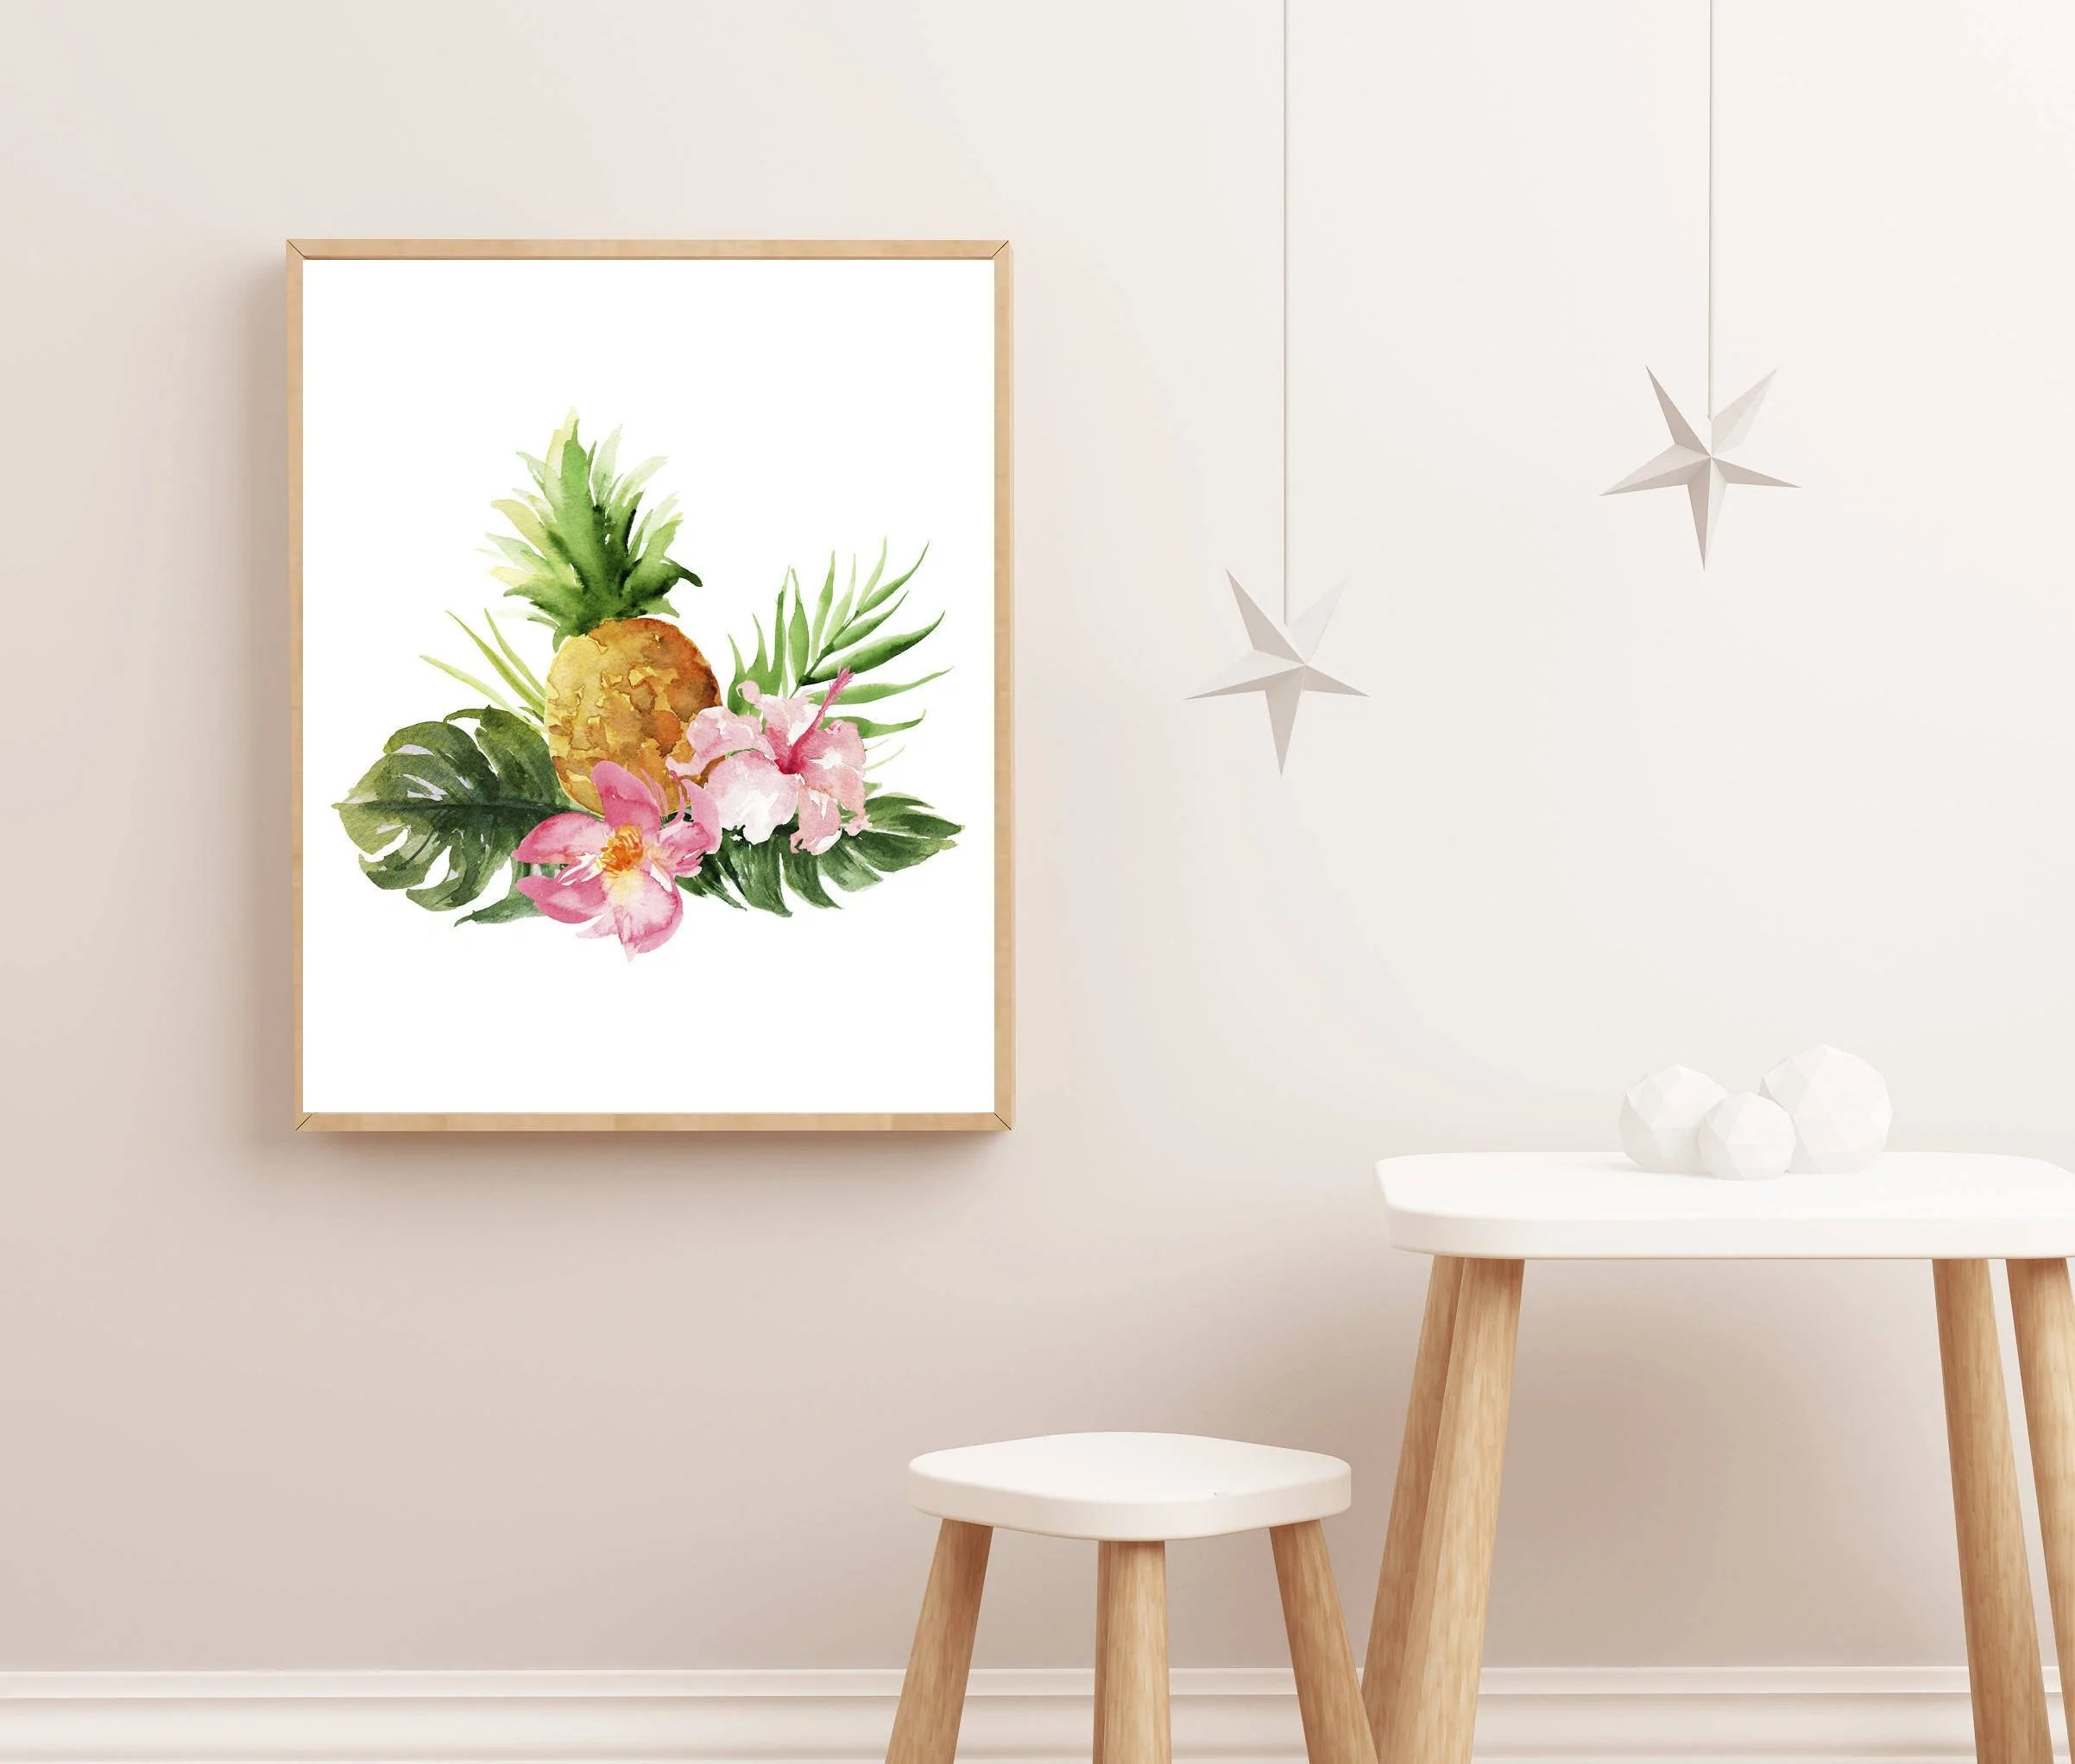 Nursery Prints Girl Girl Nursery Art Tropical Nursery Print Pineapple Art Baby Girl Nursery Art Floral Nursery Art Nursery Decor For Girl Charmingblush